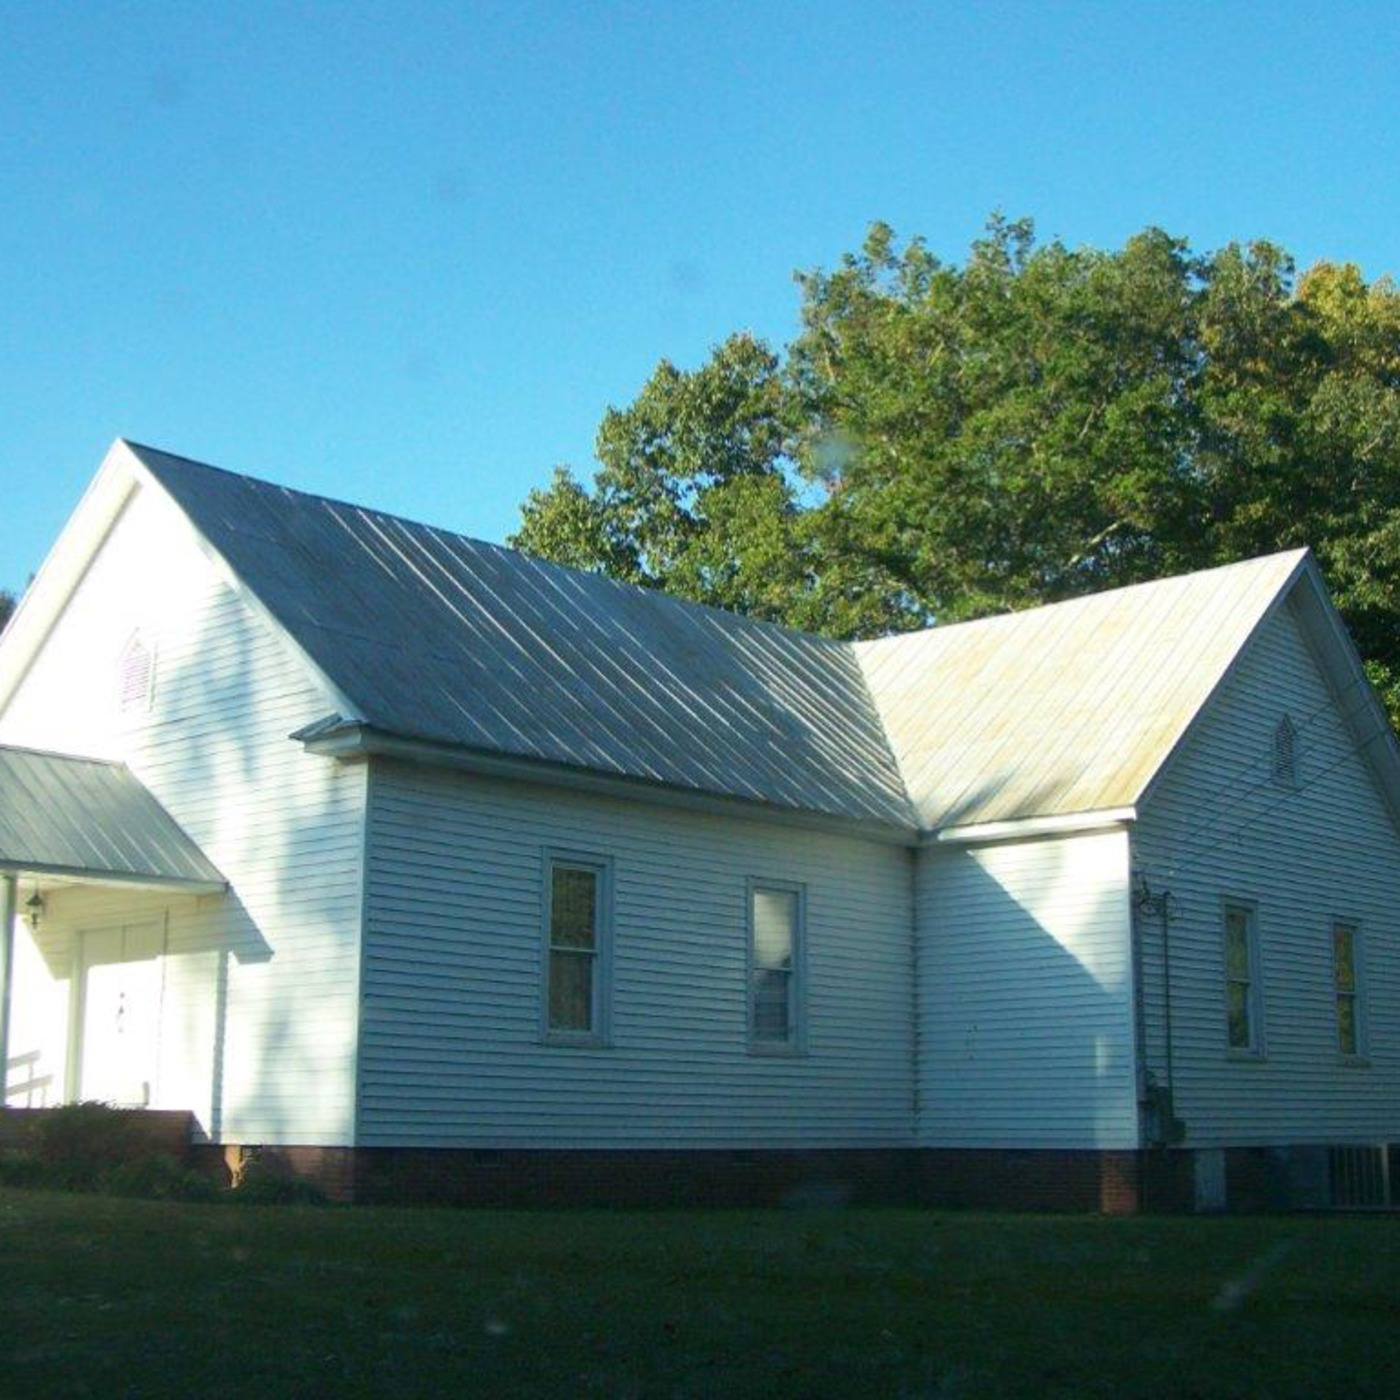 Greenwood Shores Baptist Church